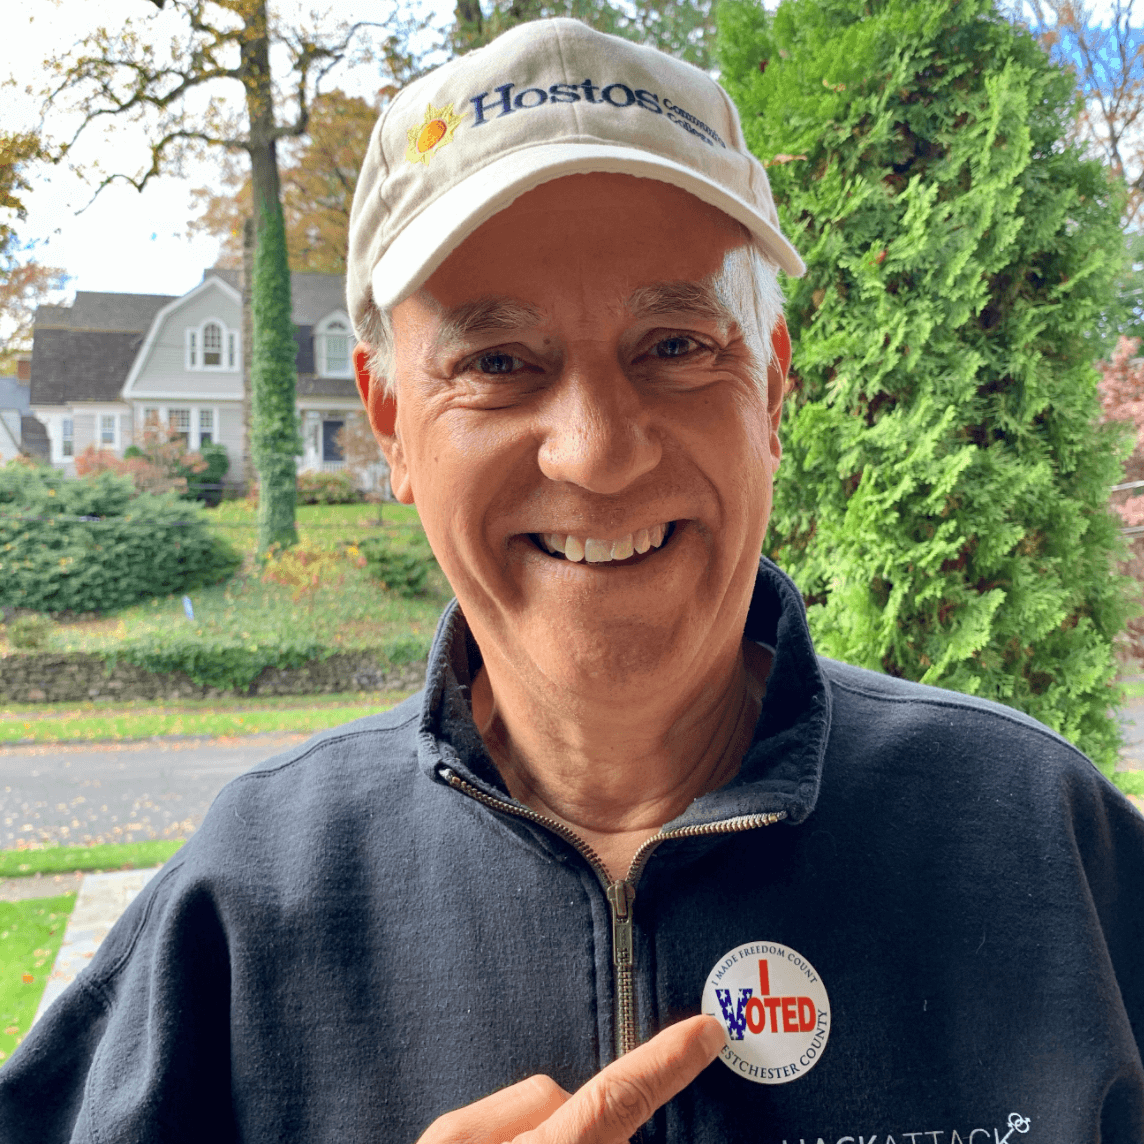 The Chancellor with an early voter sticker